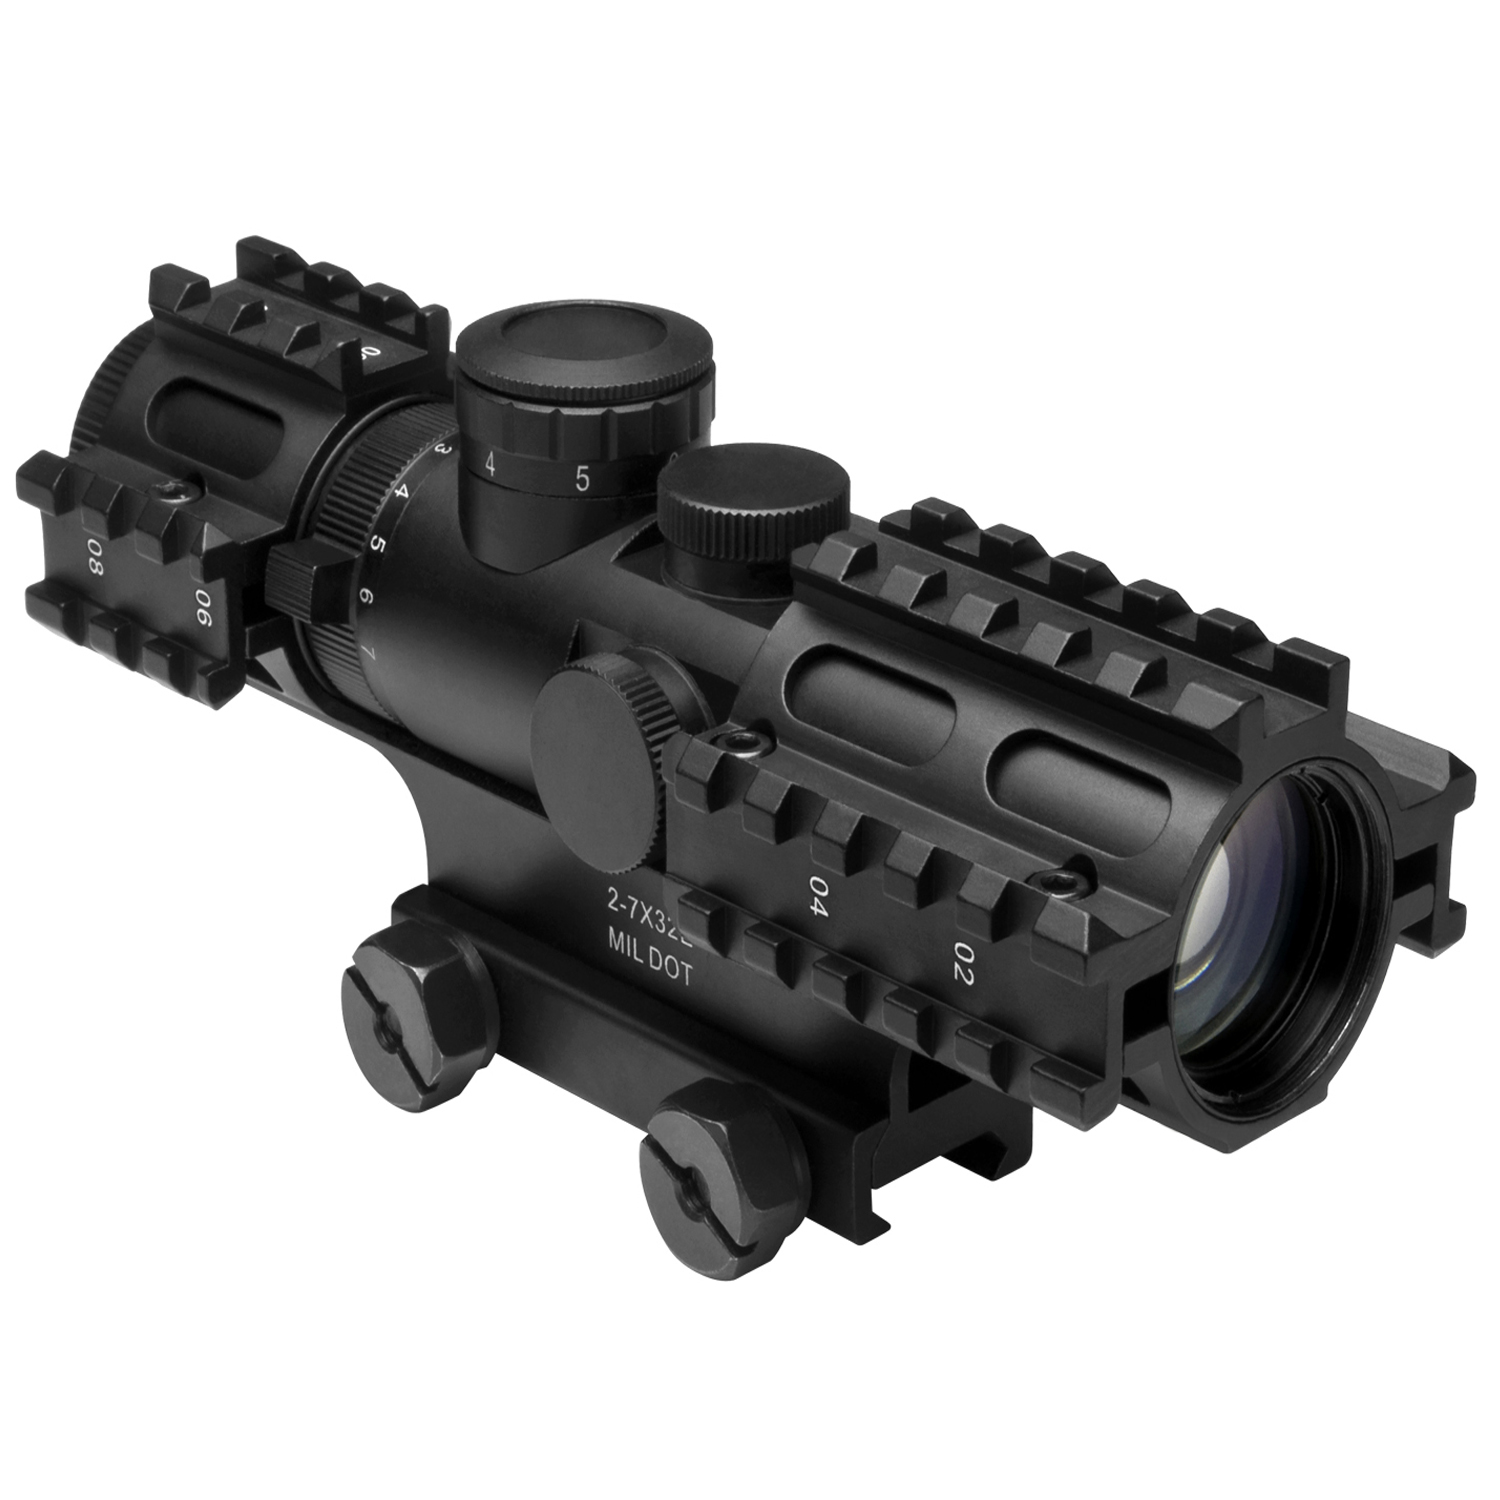 Ncstar Tri-Rail Series 2-7X32 Rifle Compact Scope